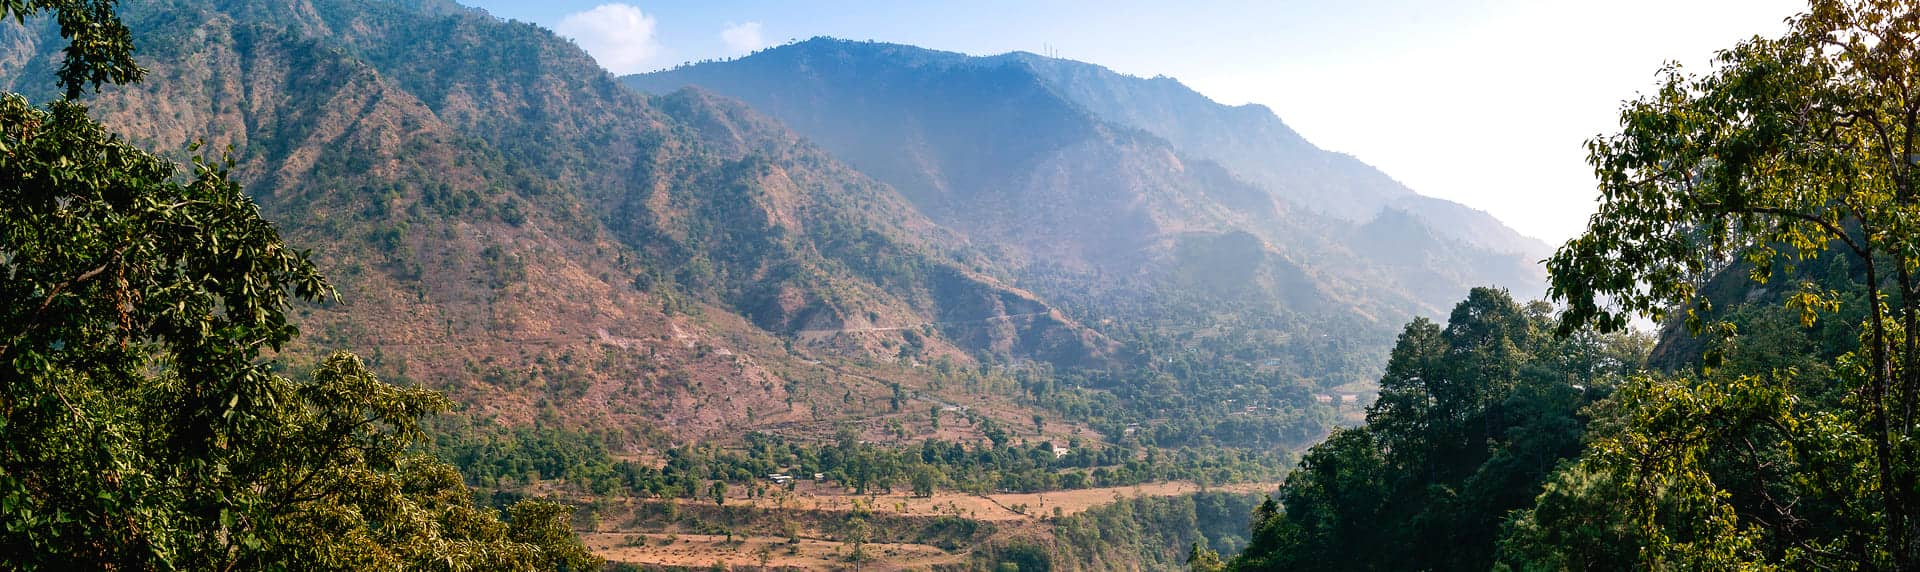 Haldwani Uttarakhand is the gateway to kumaon for the best places to visit in Uttarakhand